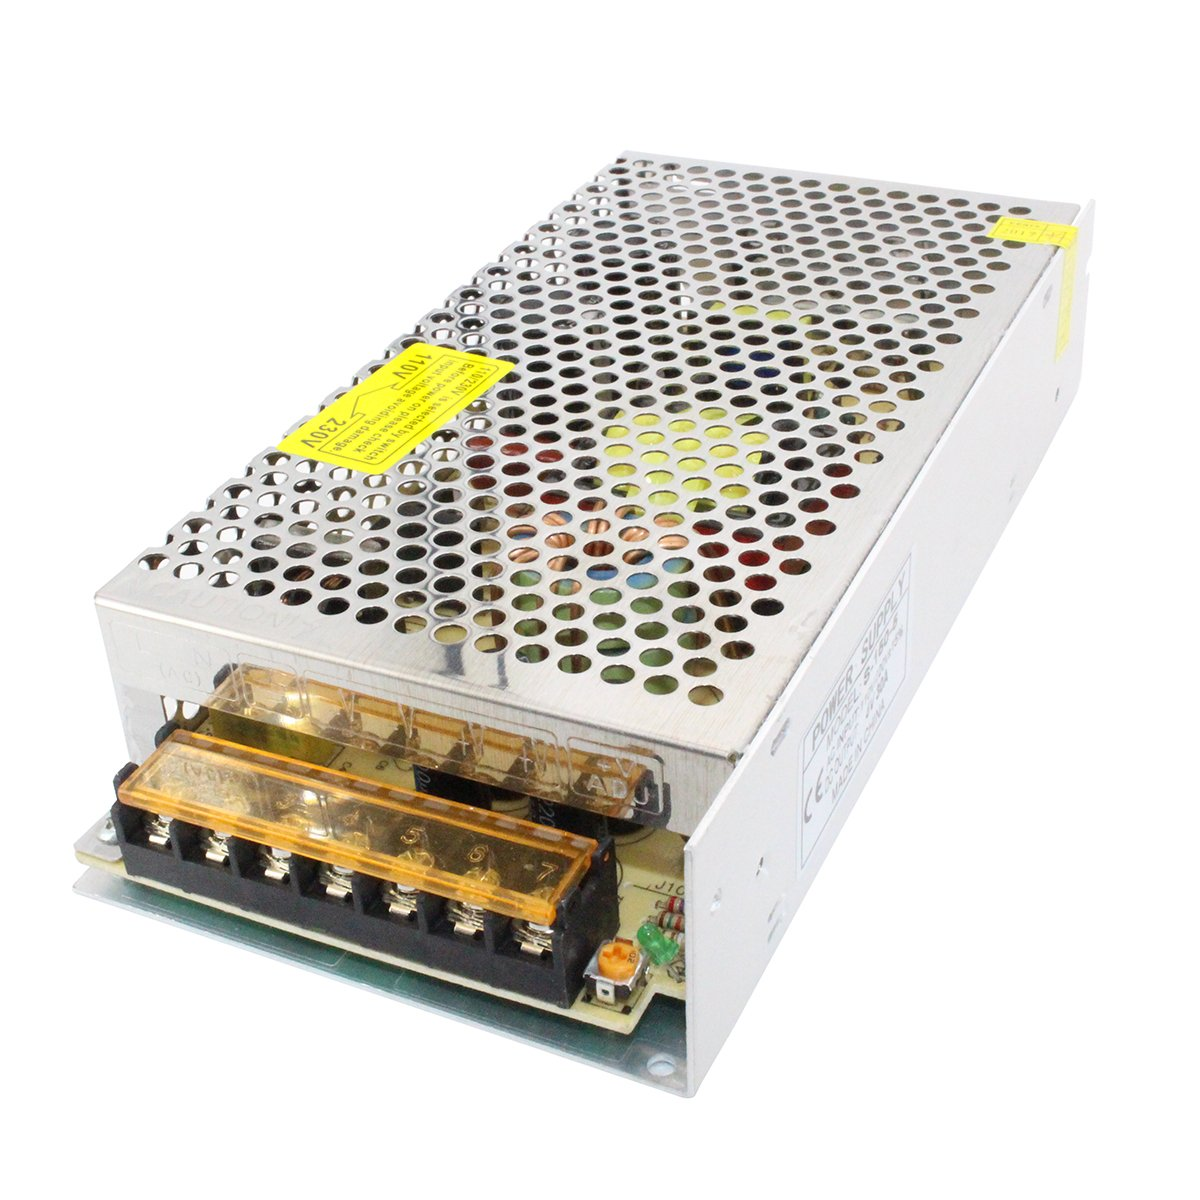 LiuTian AC 110V/220V to DC 5V 30A 150W Regulated Transformer Switching Power Supply Driver S-150-5 for LED Strip Light, CCTV, Radio, Computer Project